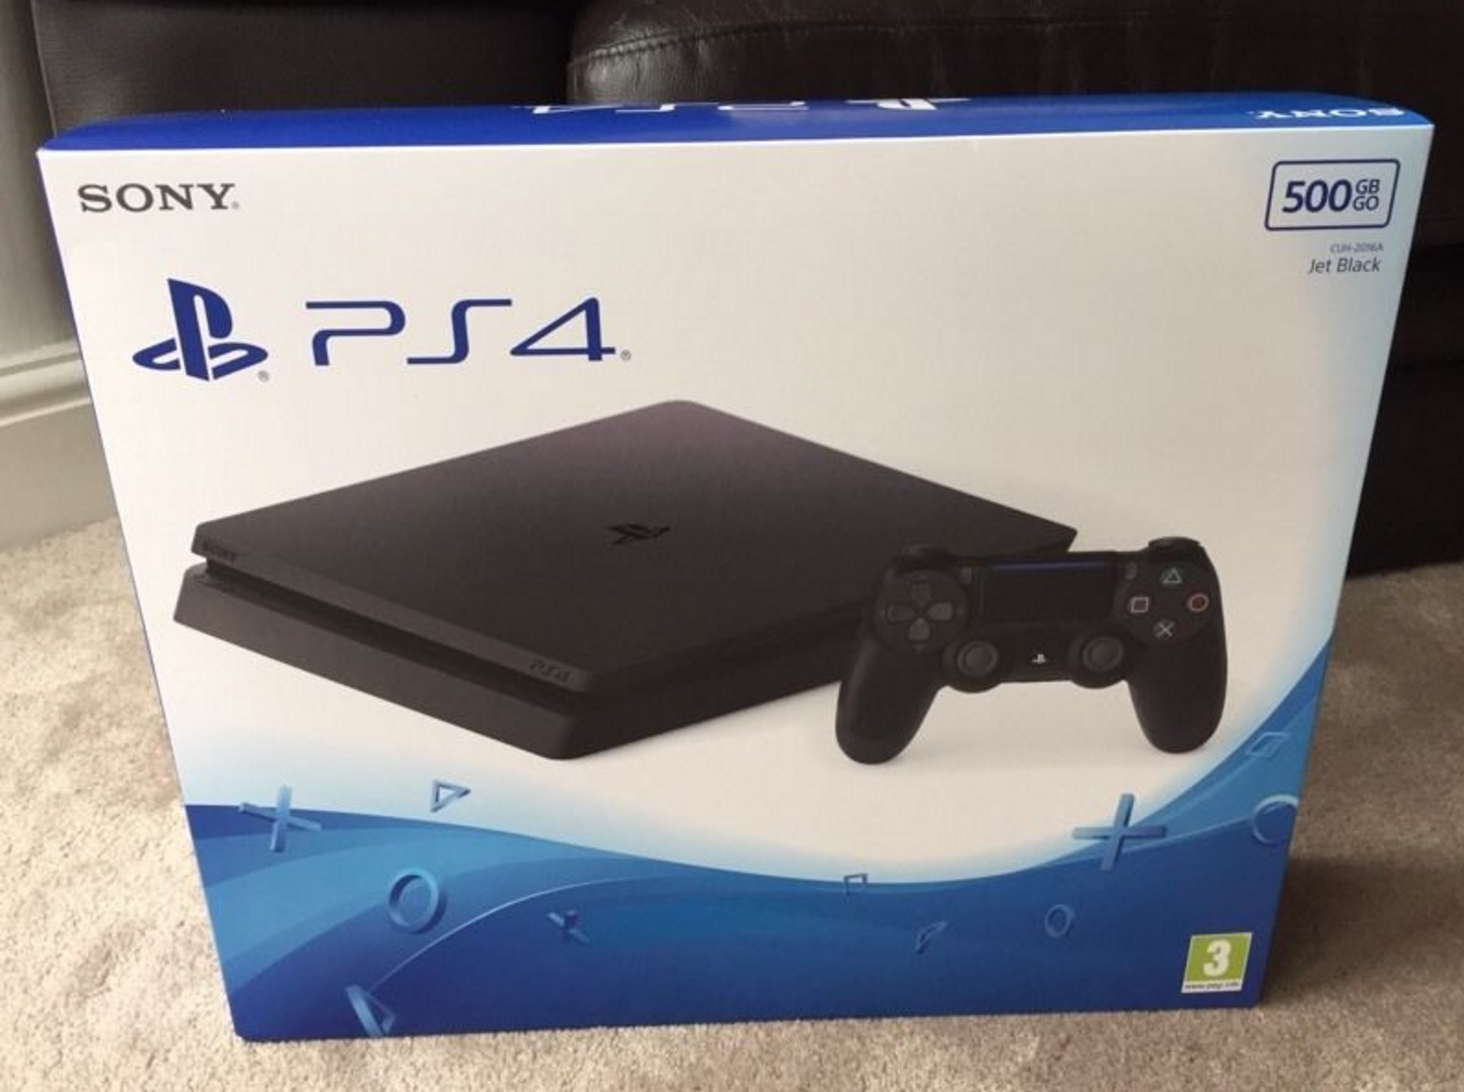 New slim PlayStation 4 leaks, is fugly - Gloss